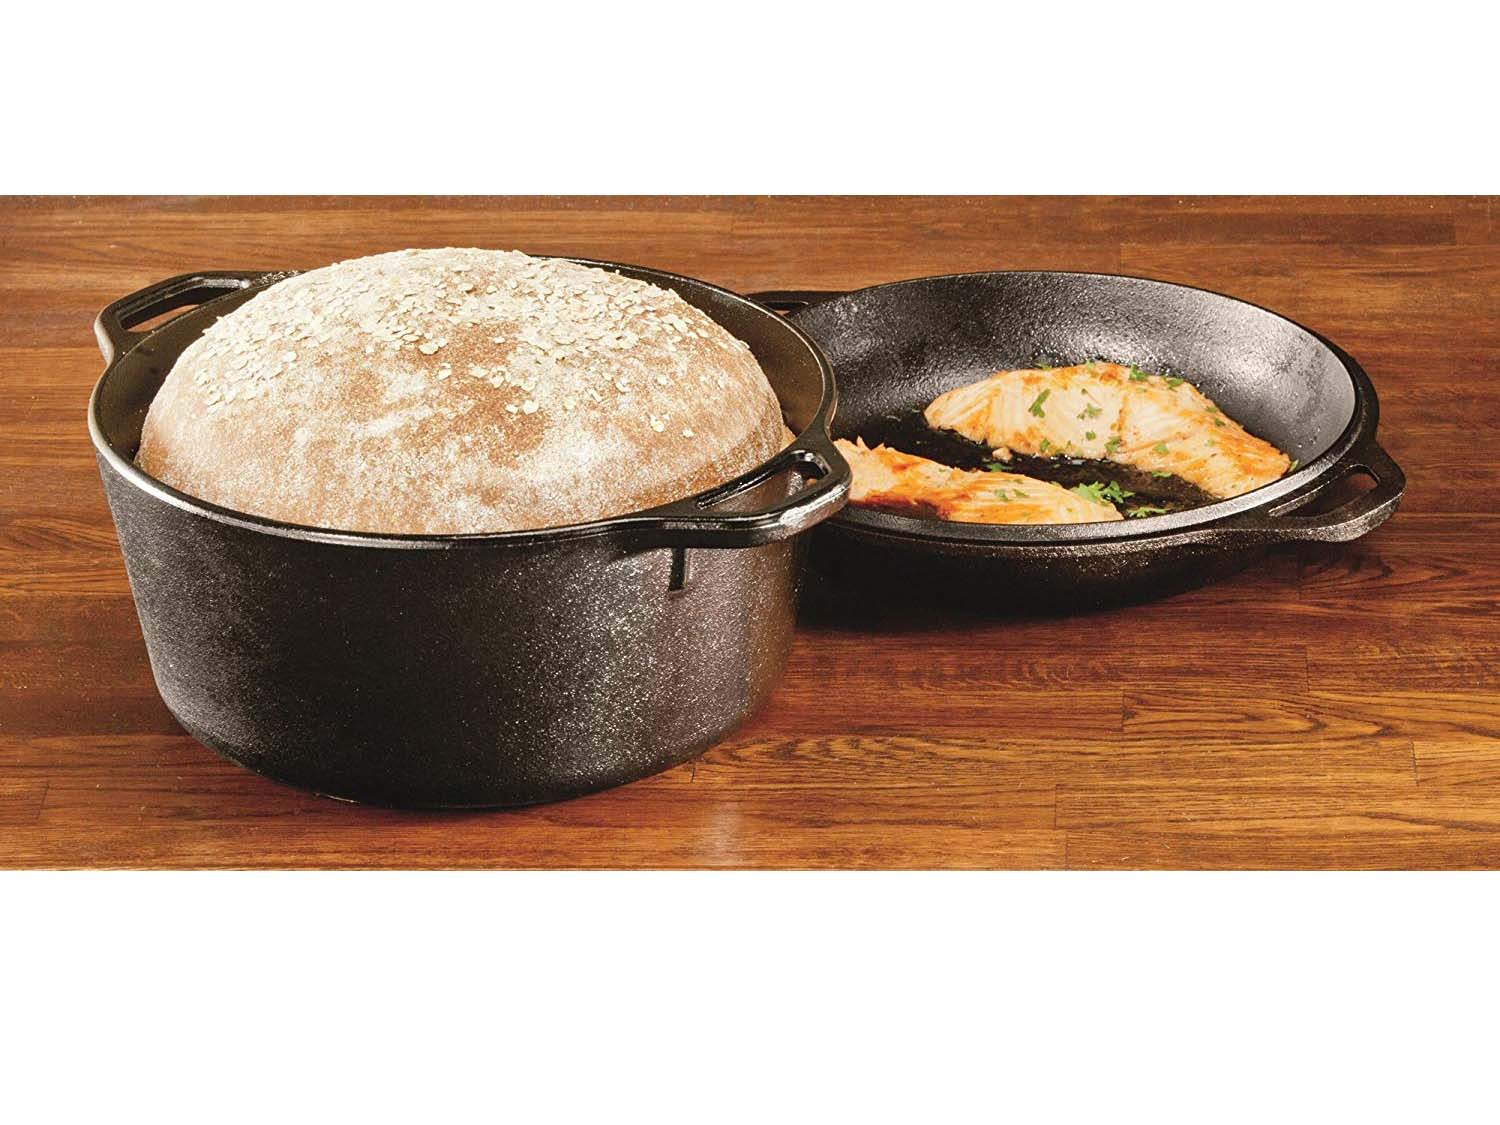 3 Things to Consider Before Buying a Dutch Oven